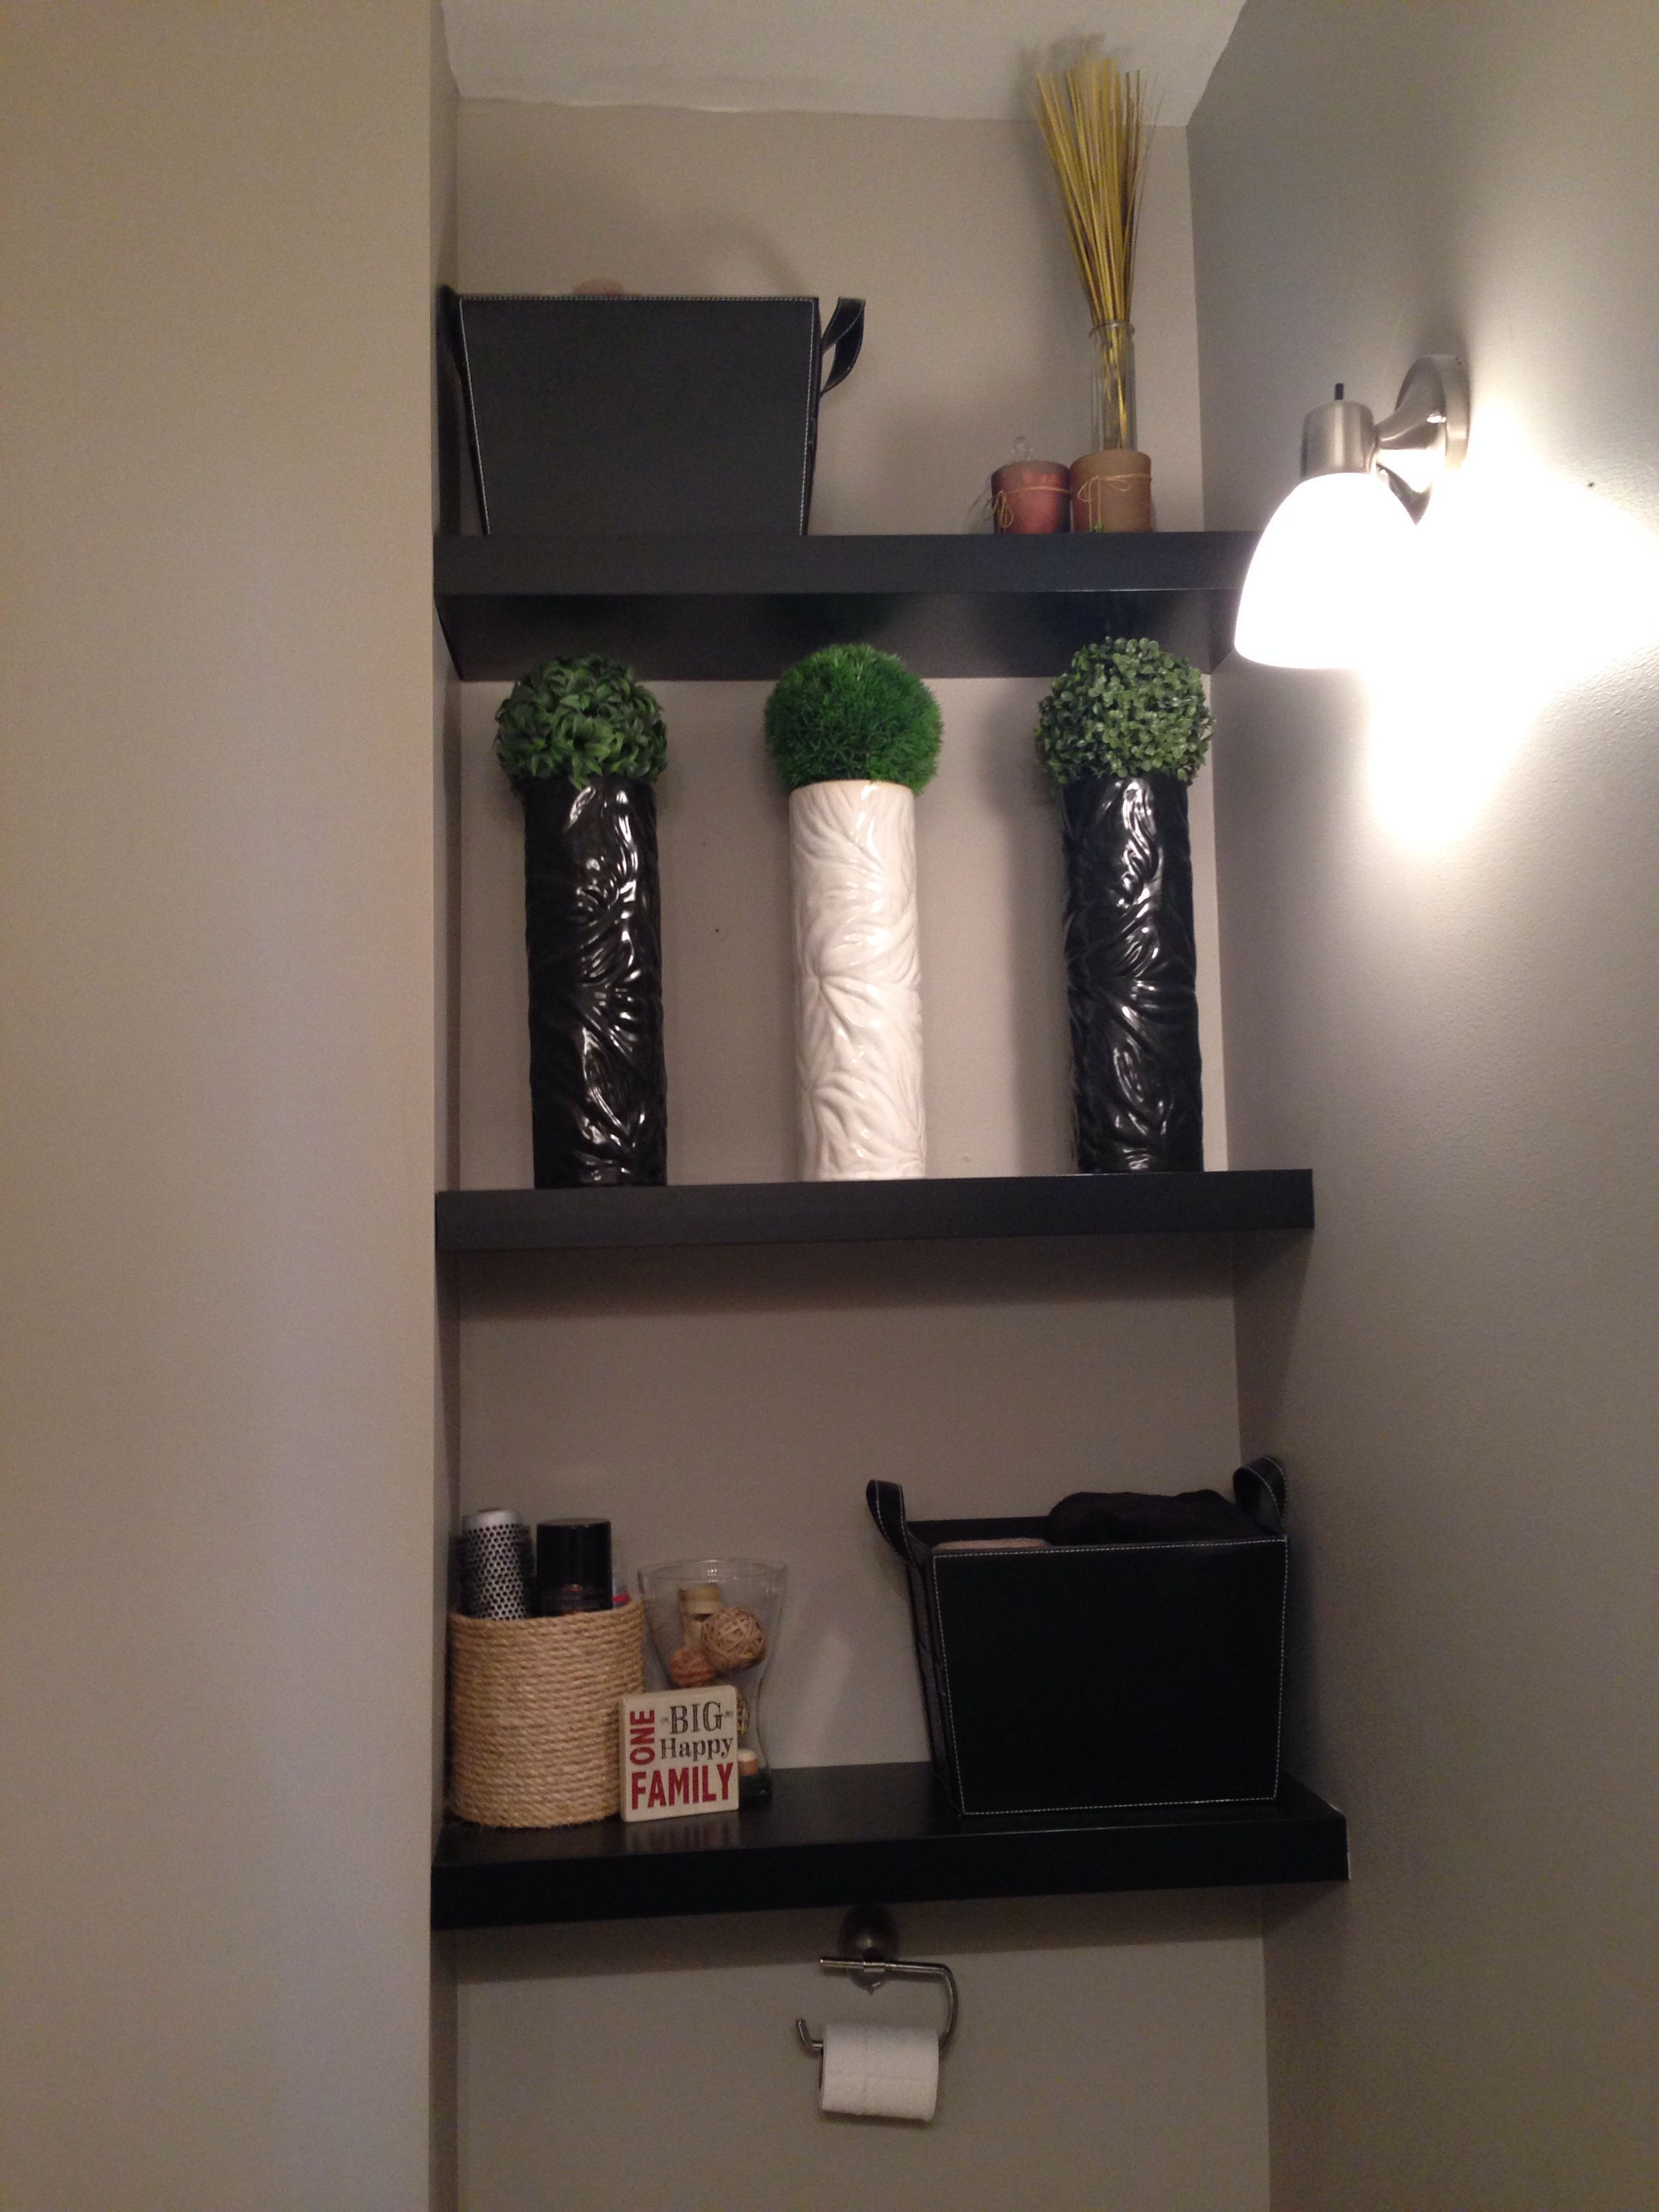 Have A Strange Nook In A Room Add Ikea Floating Shelves And Customize The Space Floatingshelvesideasrustic Floatings Ikea Floating Shelves Floating Shelves